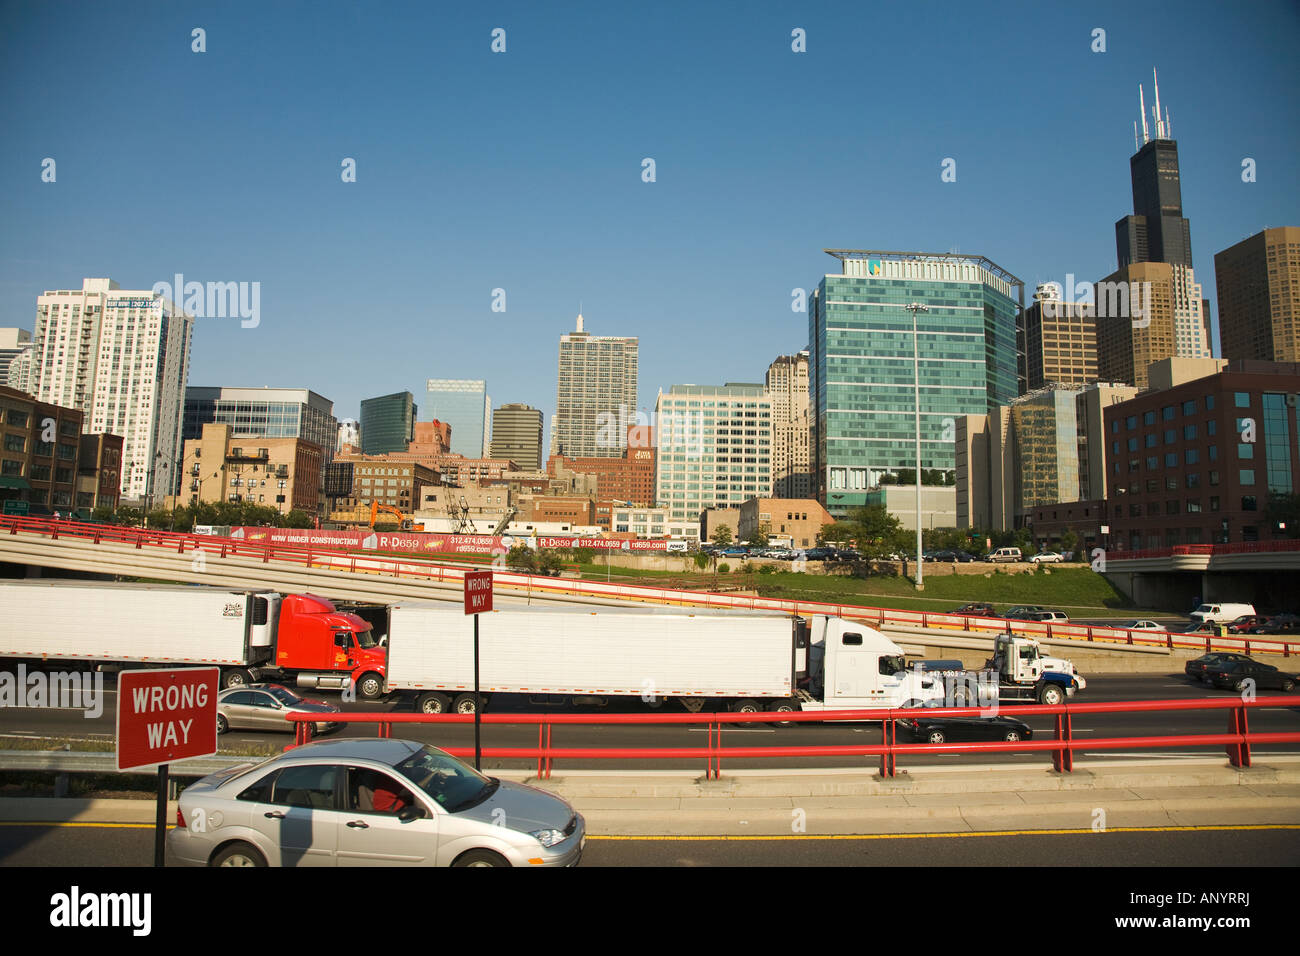 ILLINOIS Chicago Traffic on Kennedy highway interstate system wrong way signs on exit ramp - Stock Image